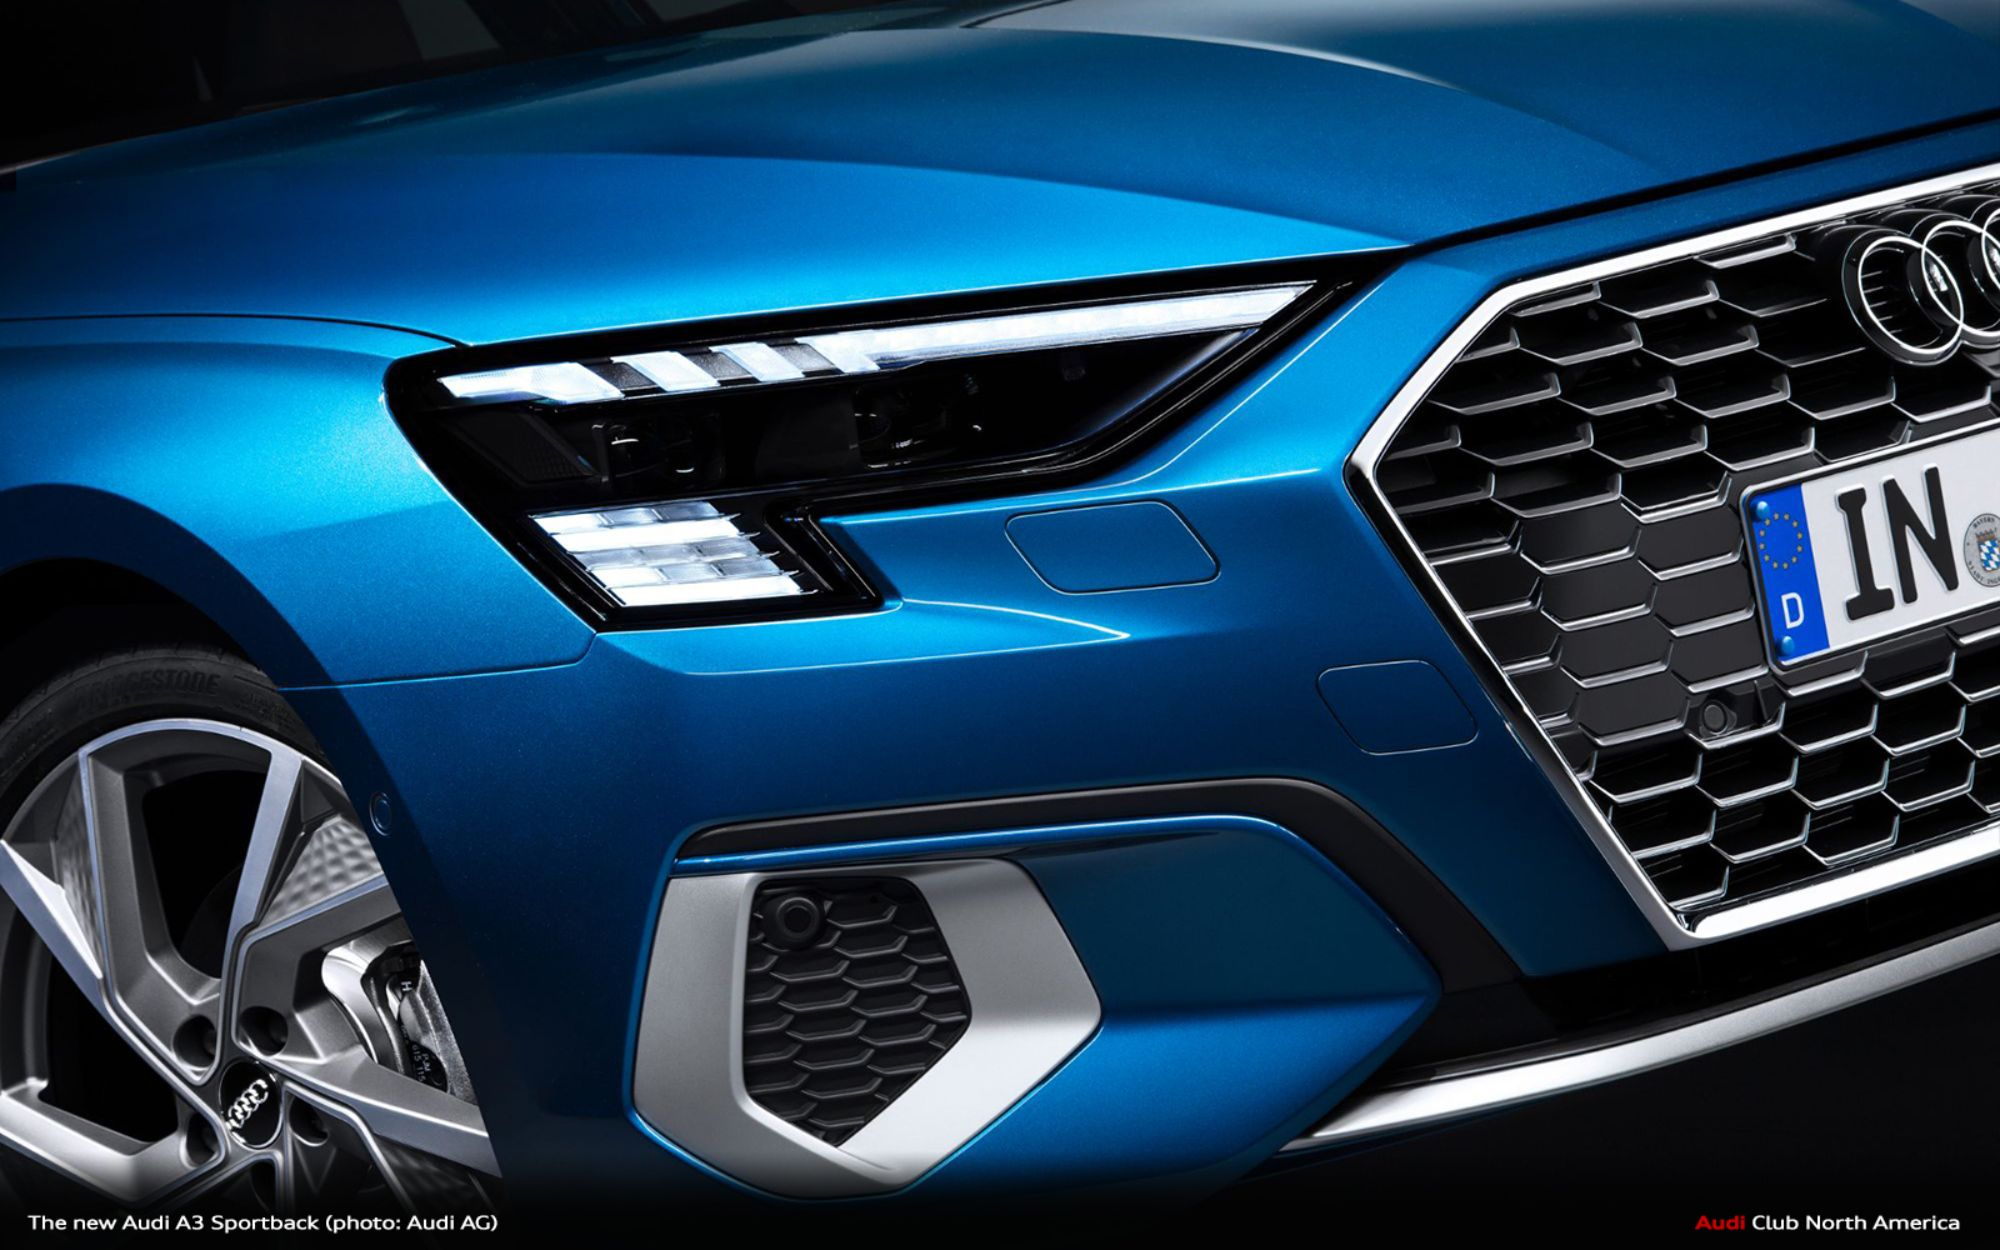 More Dynamic Than Ever: The New Audi A3 Sportback